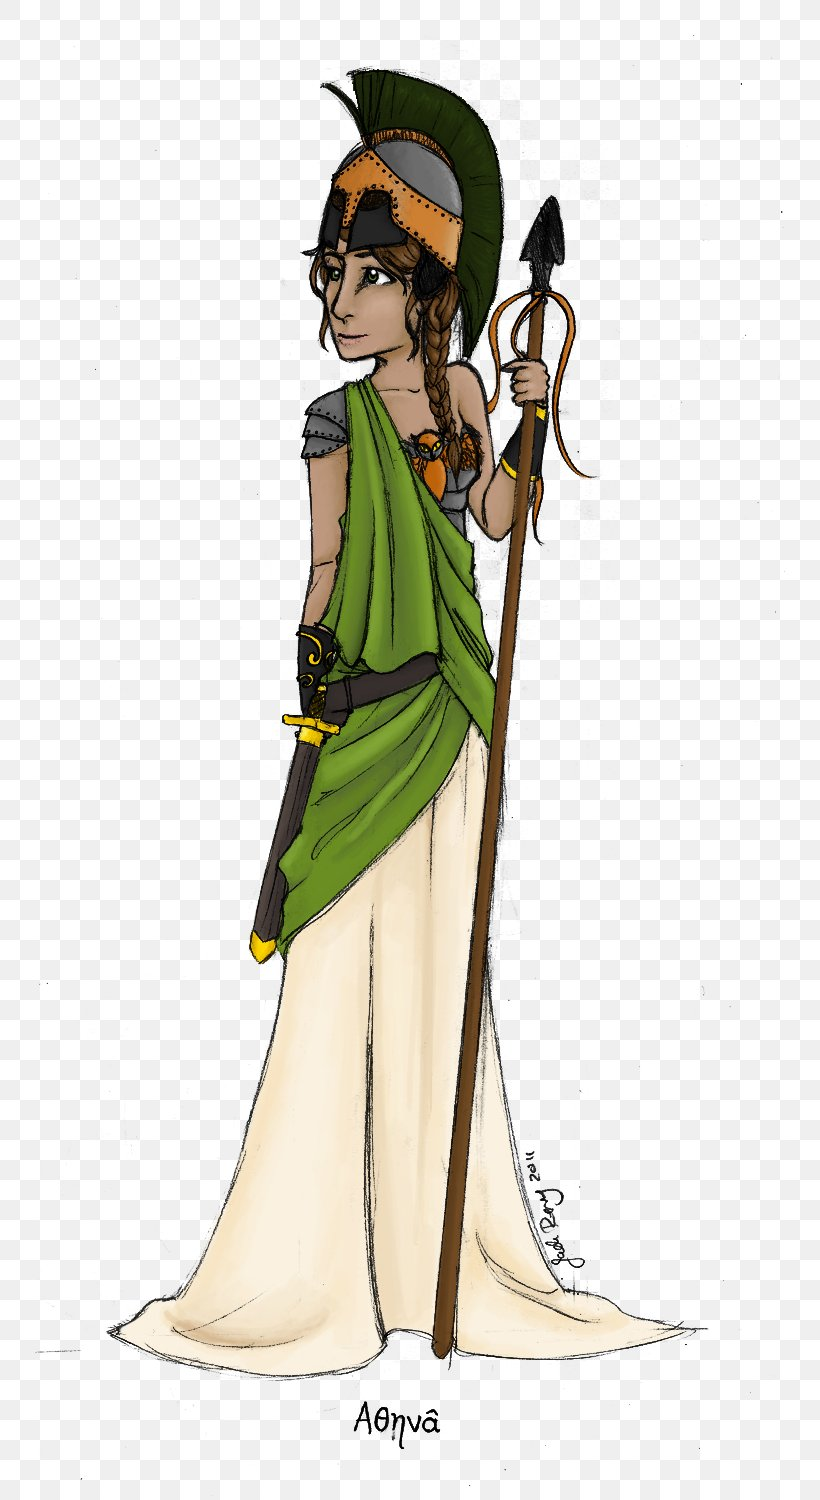 Athena Goddess Drawing Png Free Athena Goddess Drawing Png Transparent Images 132556 Pngio